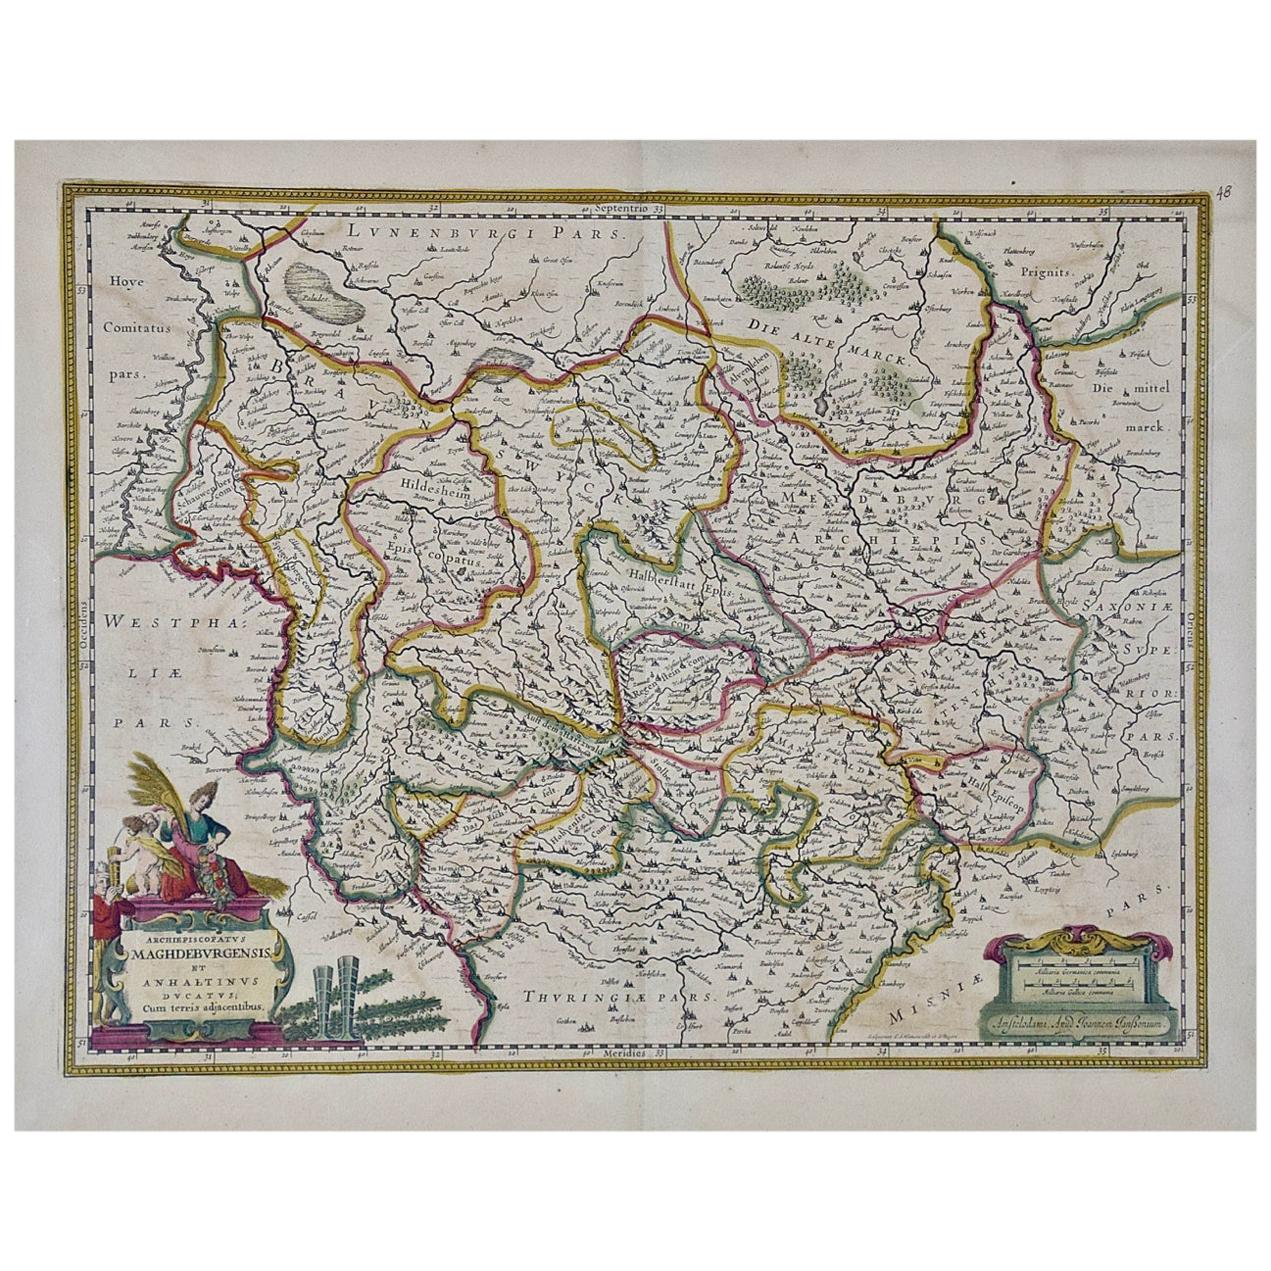 17th Century Hand-Colored Map of a Region in West Germany by Janssonius